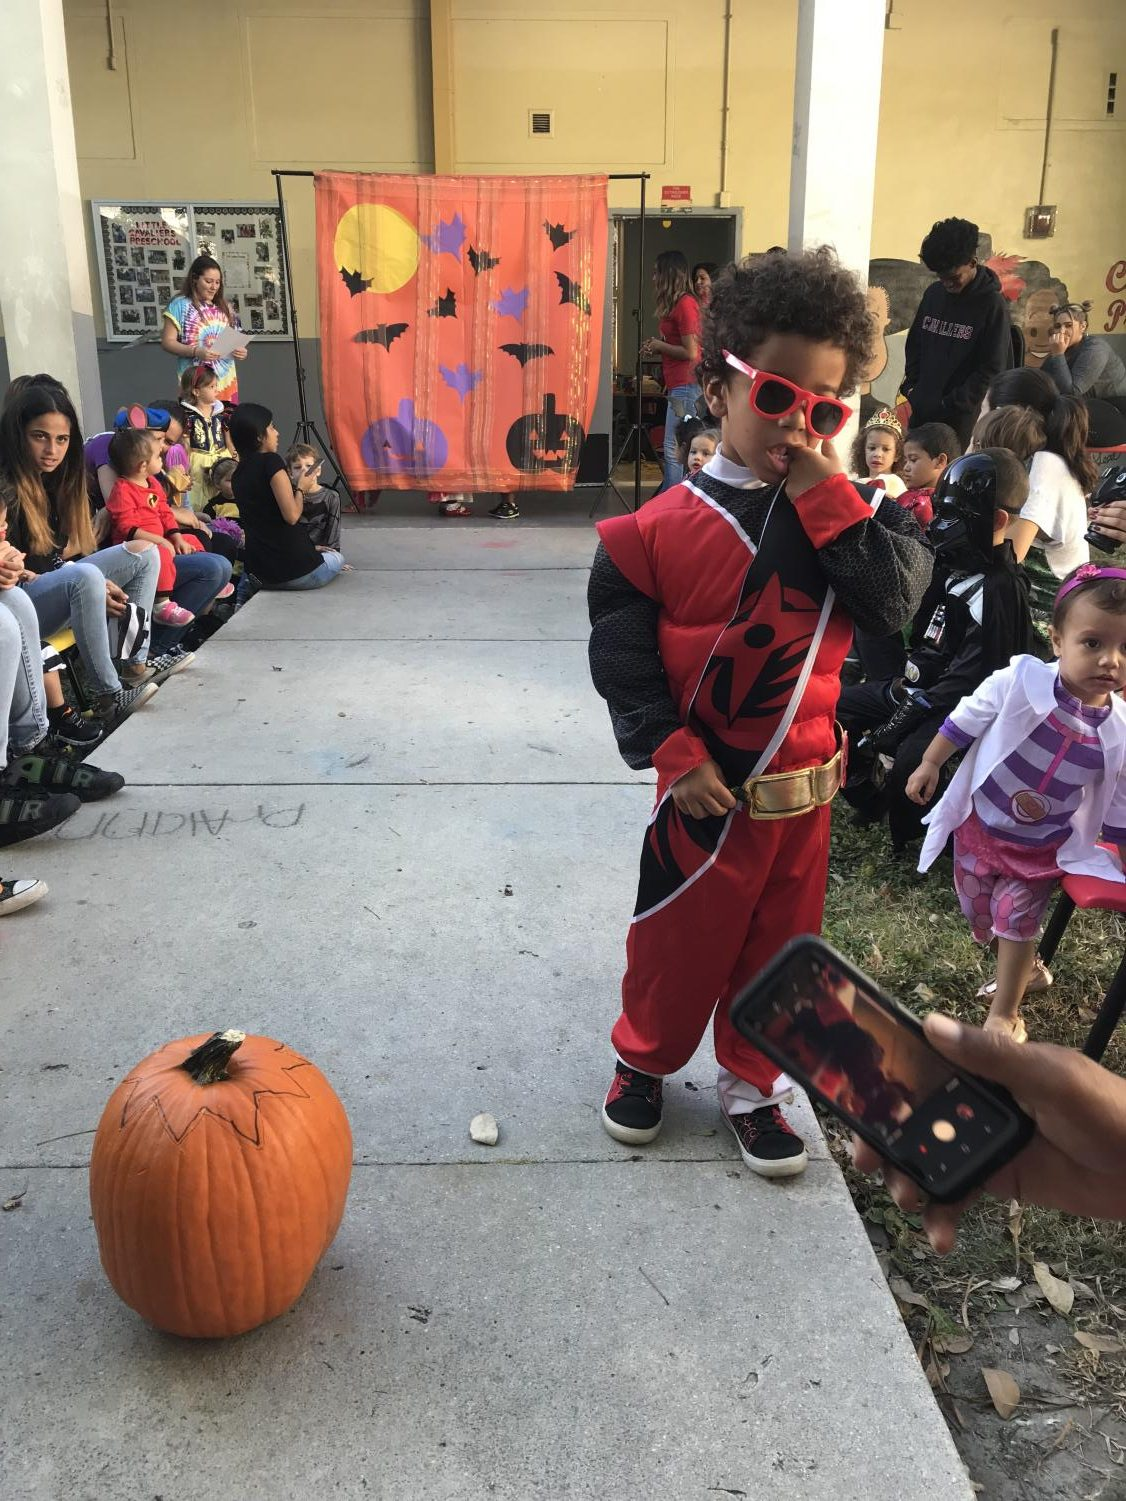 Little+Cavalier+showing+off+his+costume+at+the+Halloween+Fashion+show.